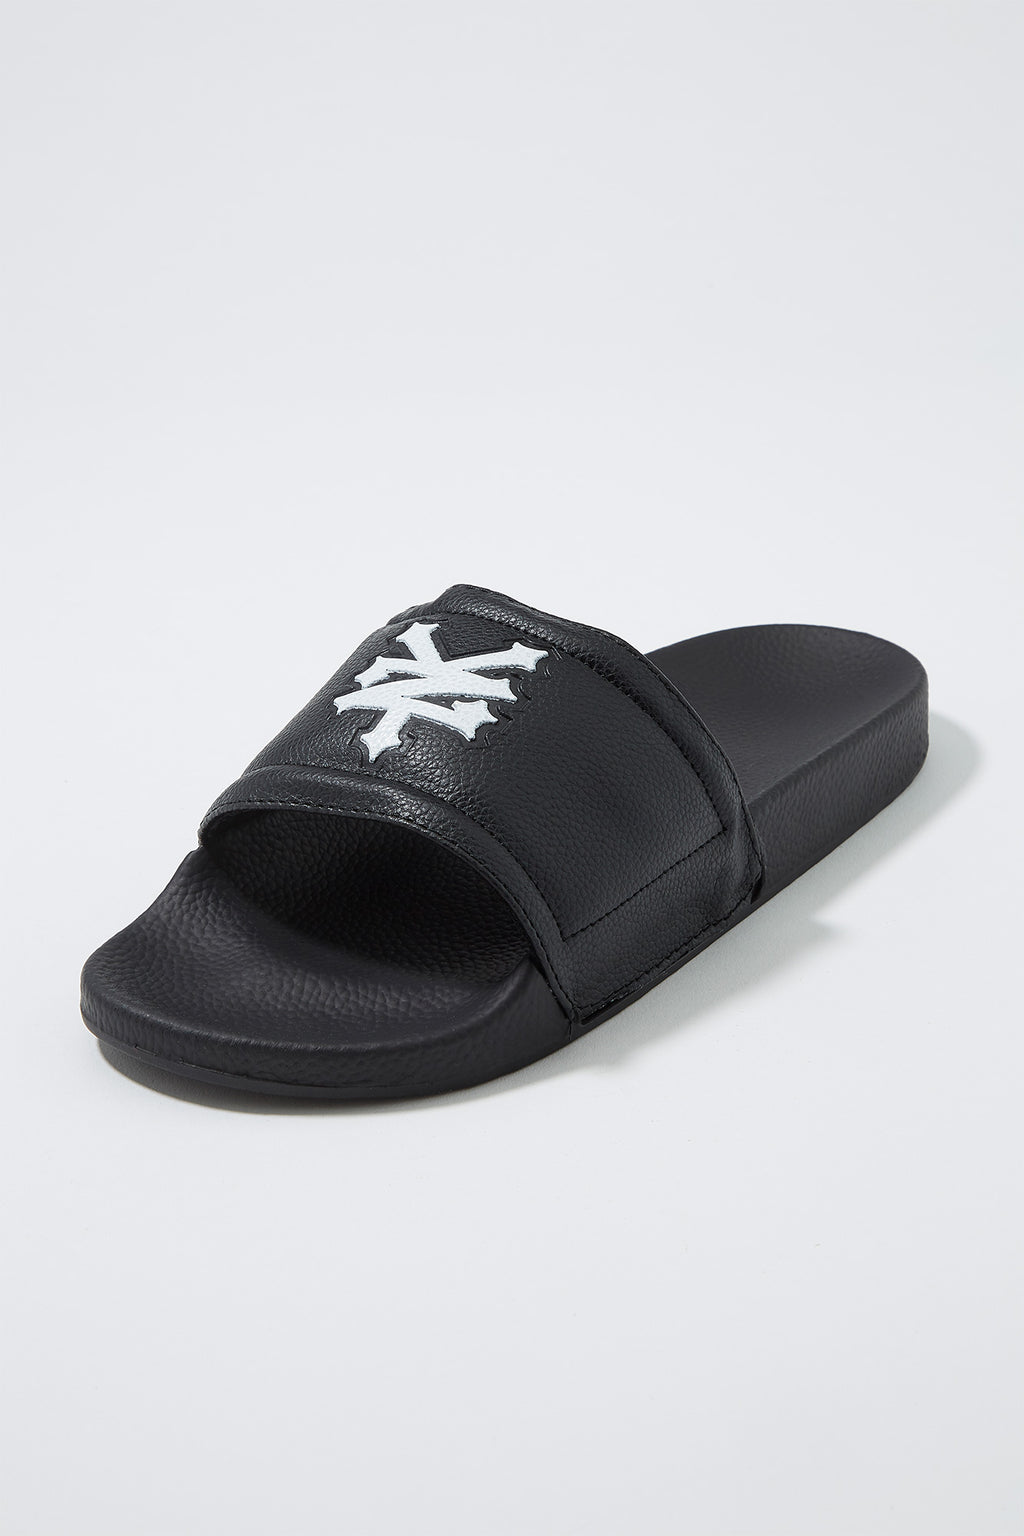 Zoo York Boys Slide Sandals